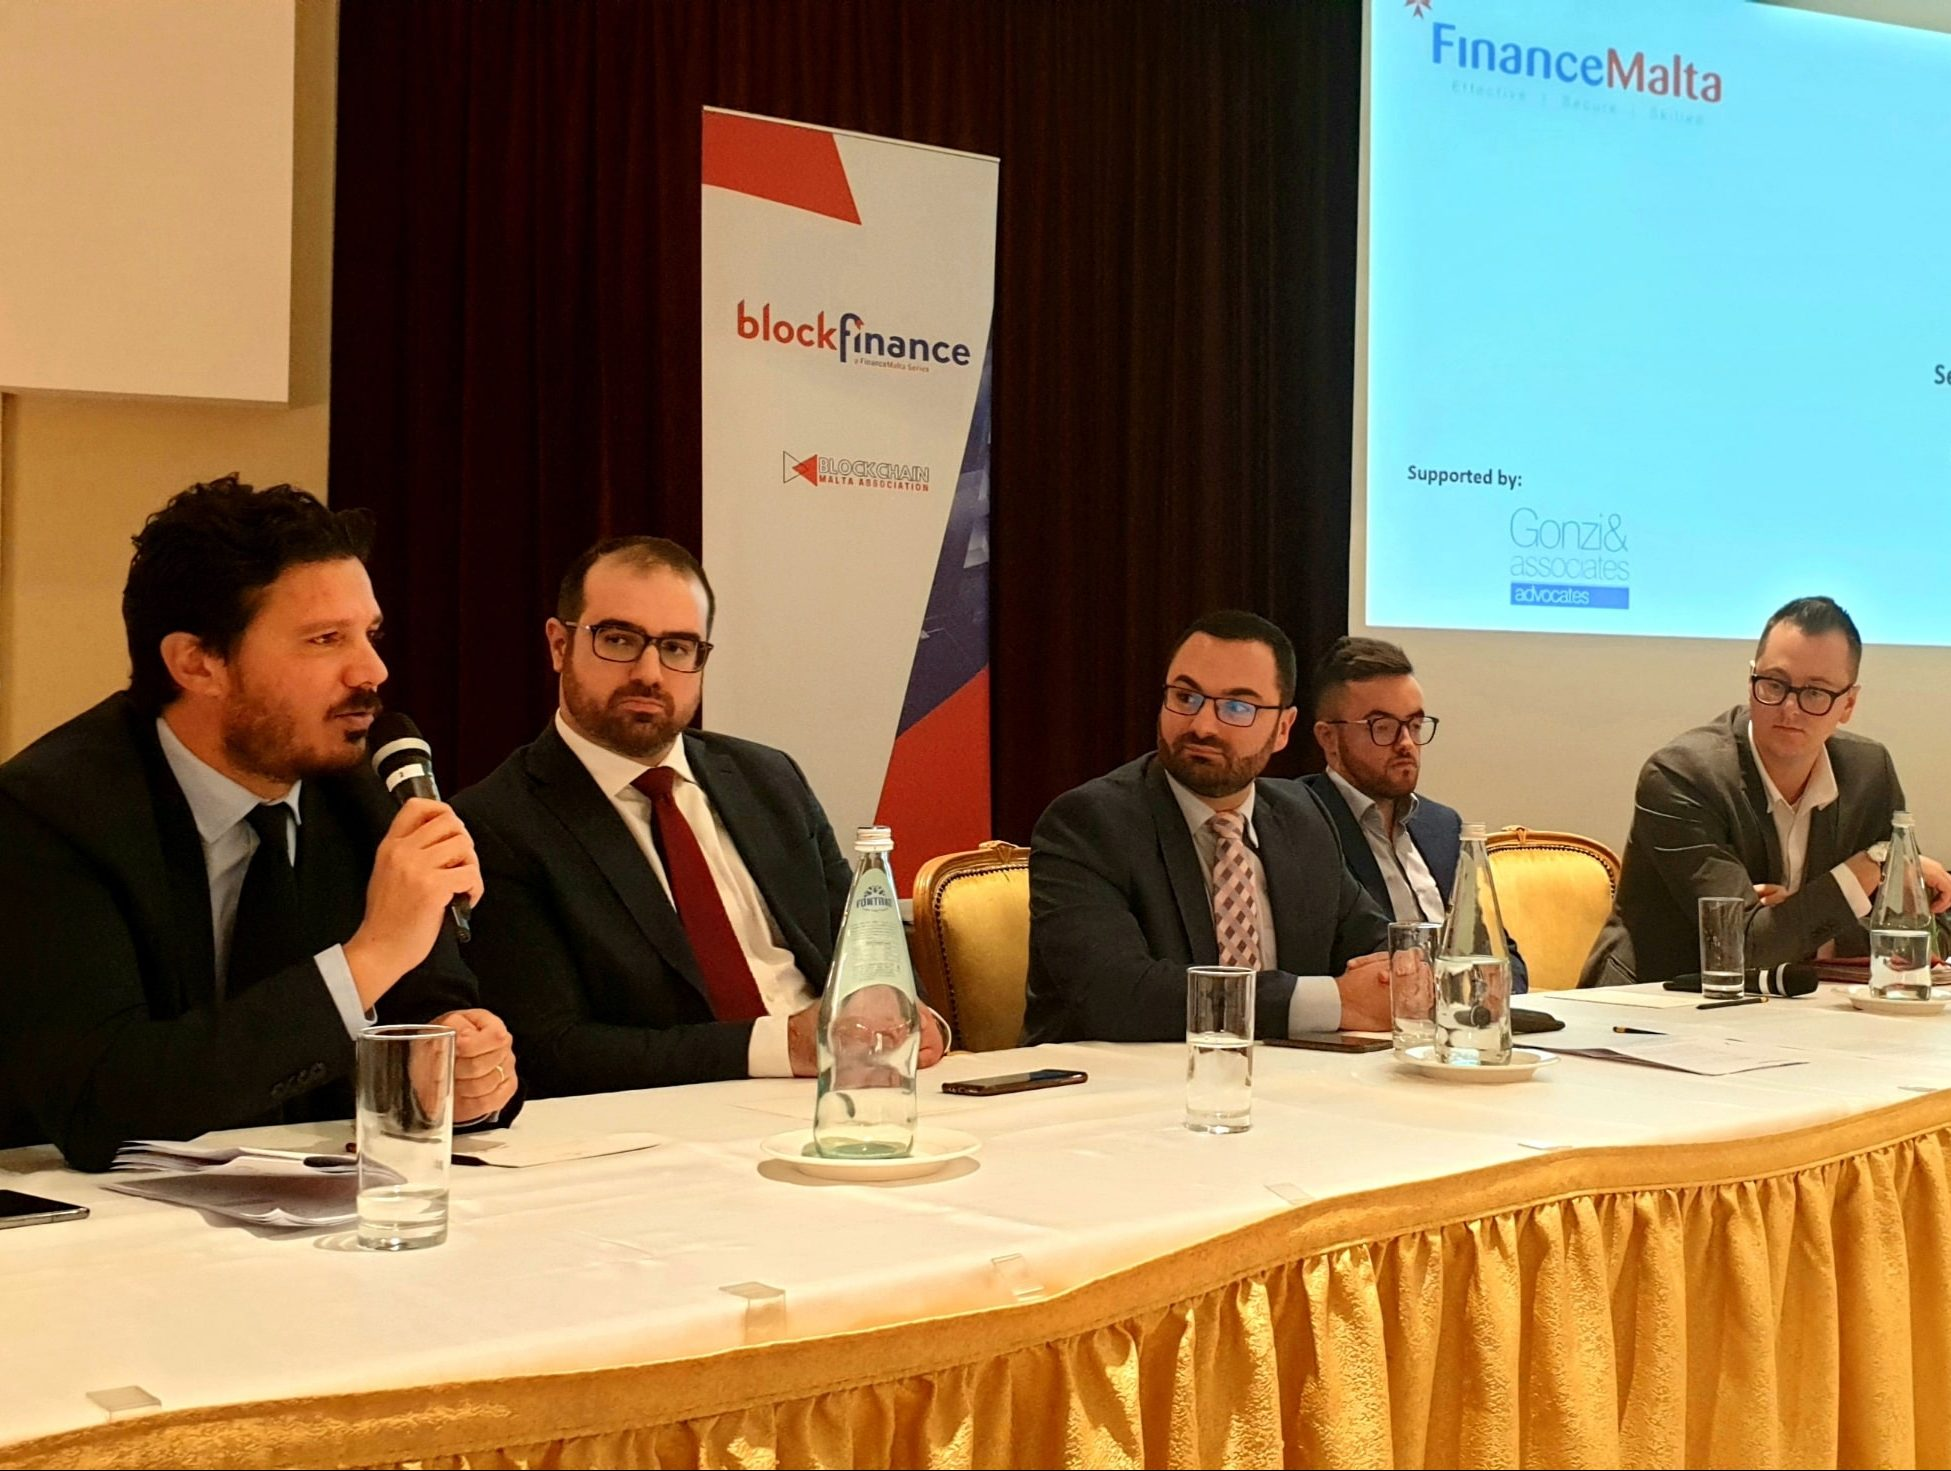 FinanceMalta's final BlockFinance event for 2019 delves into STOs